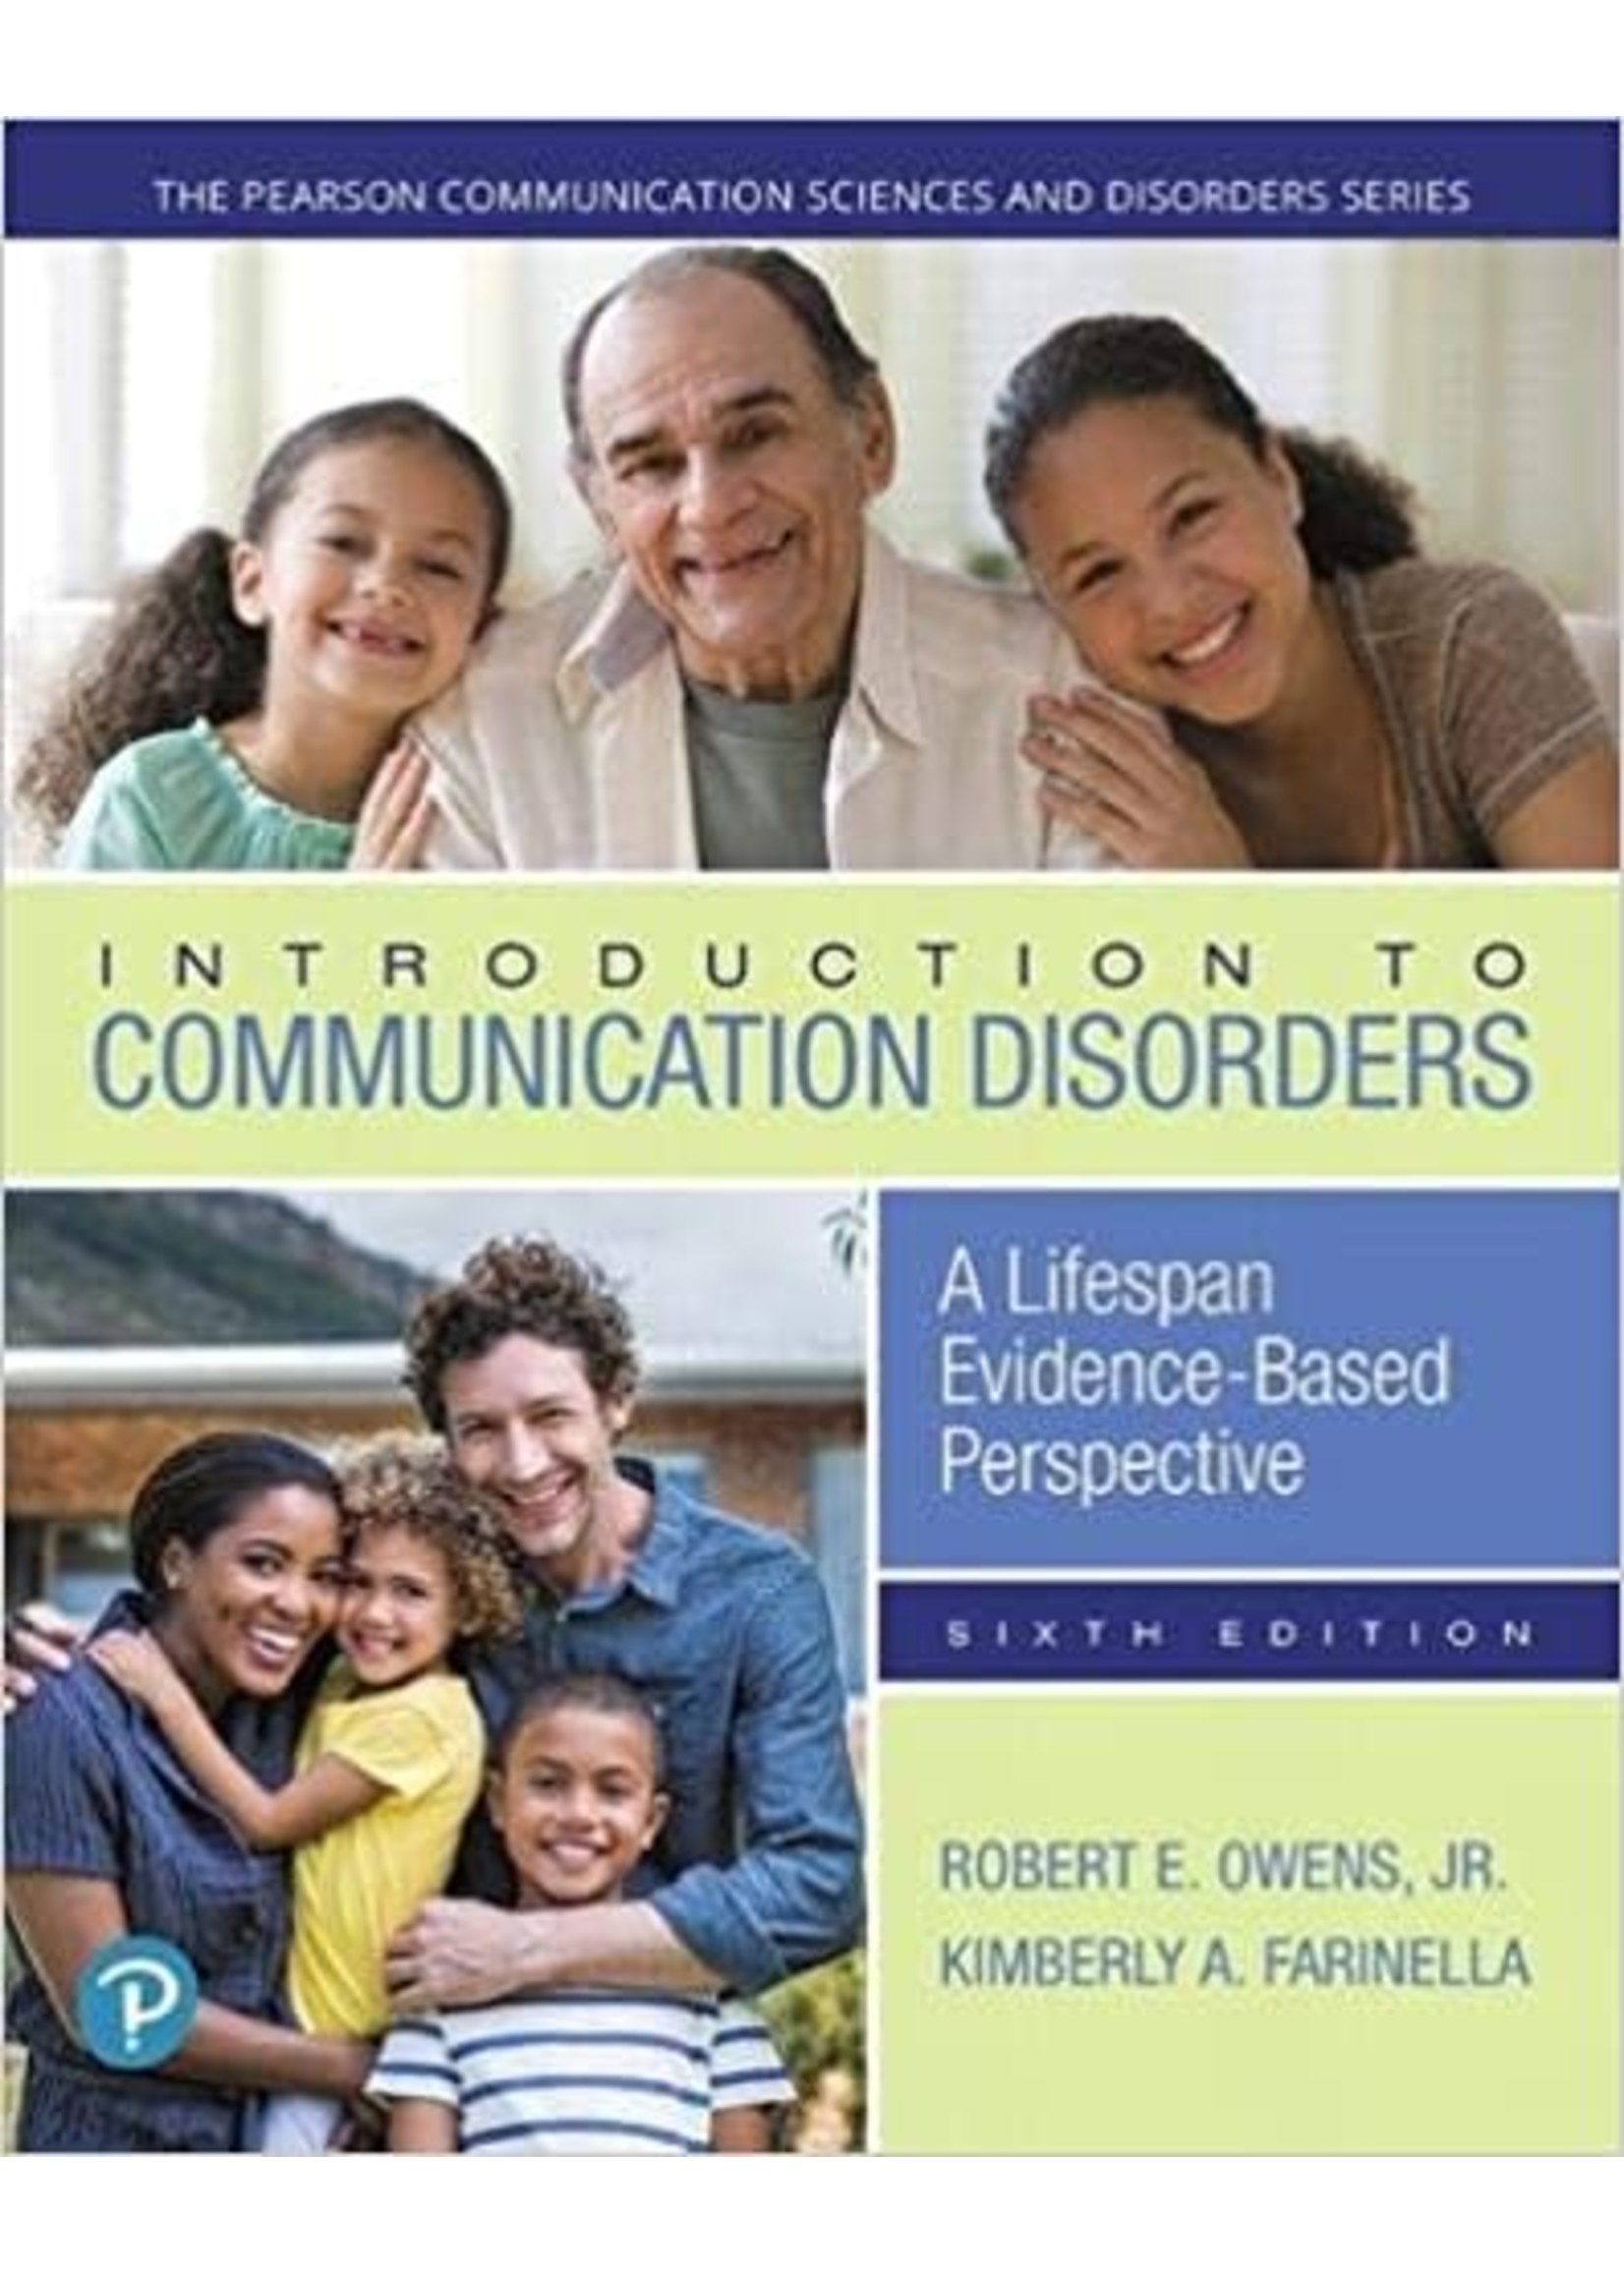 CSD101 INTRODUCTION TO COMMUNICATION DISORDERS